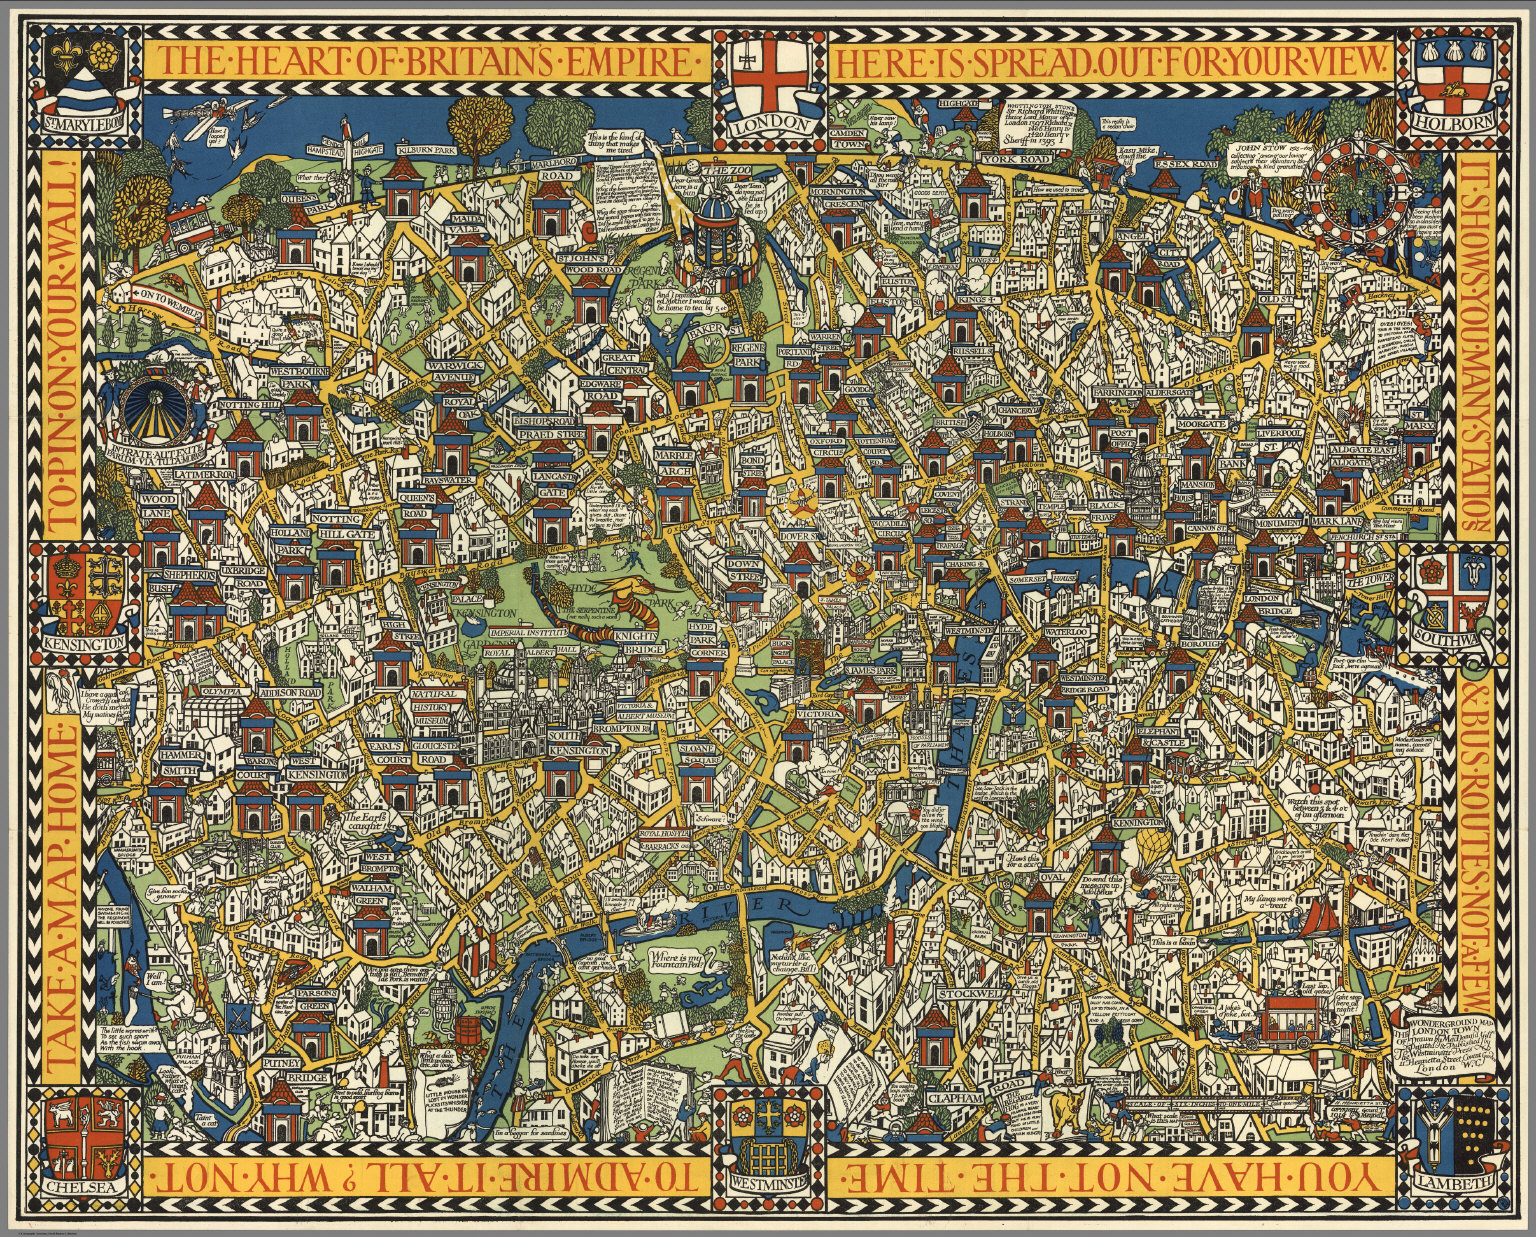 London Town Map.The Famous Wonderground Map Of London Town David Rumsey